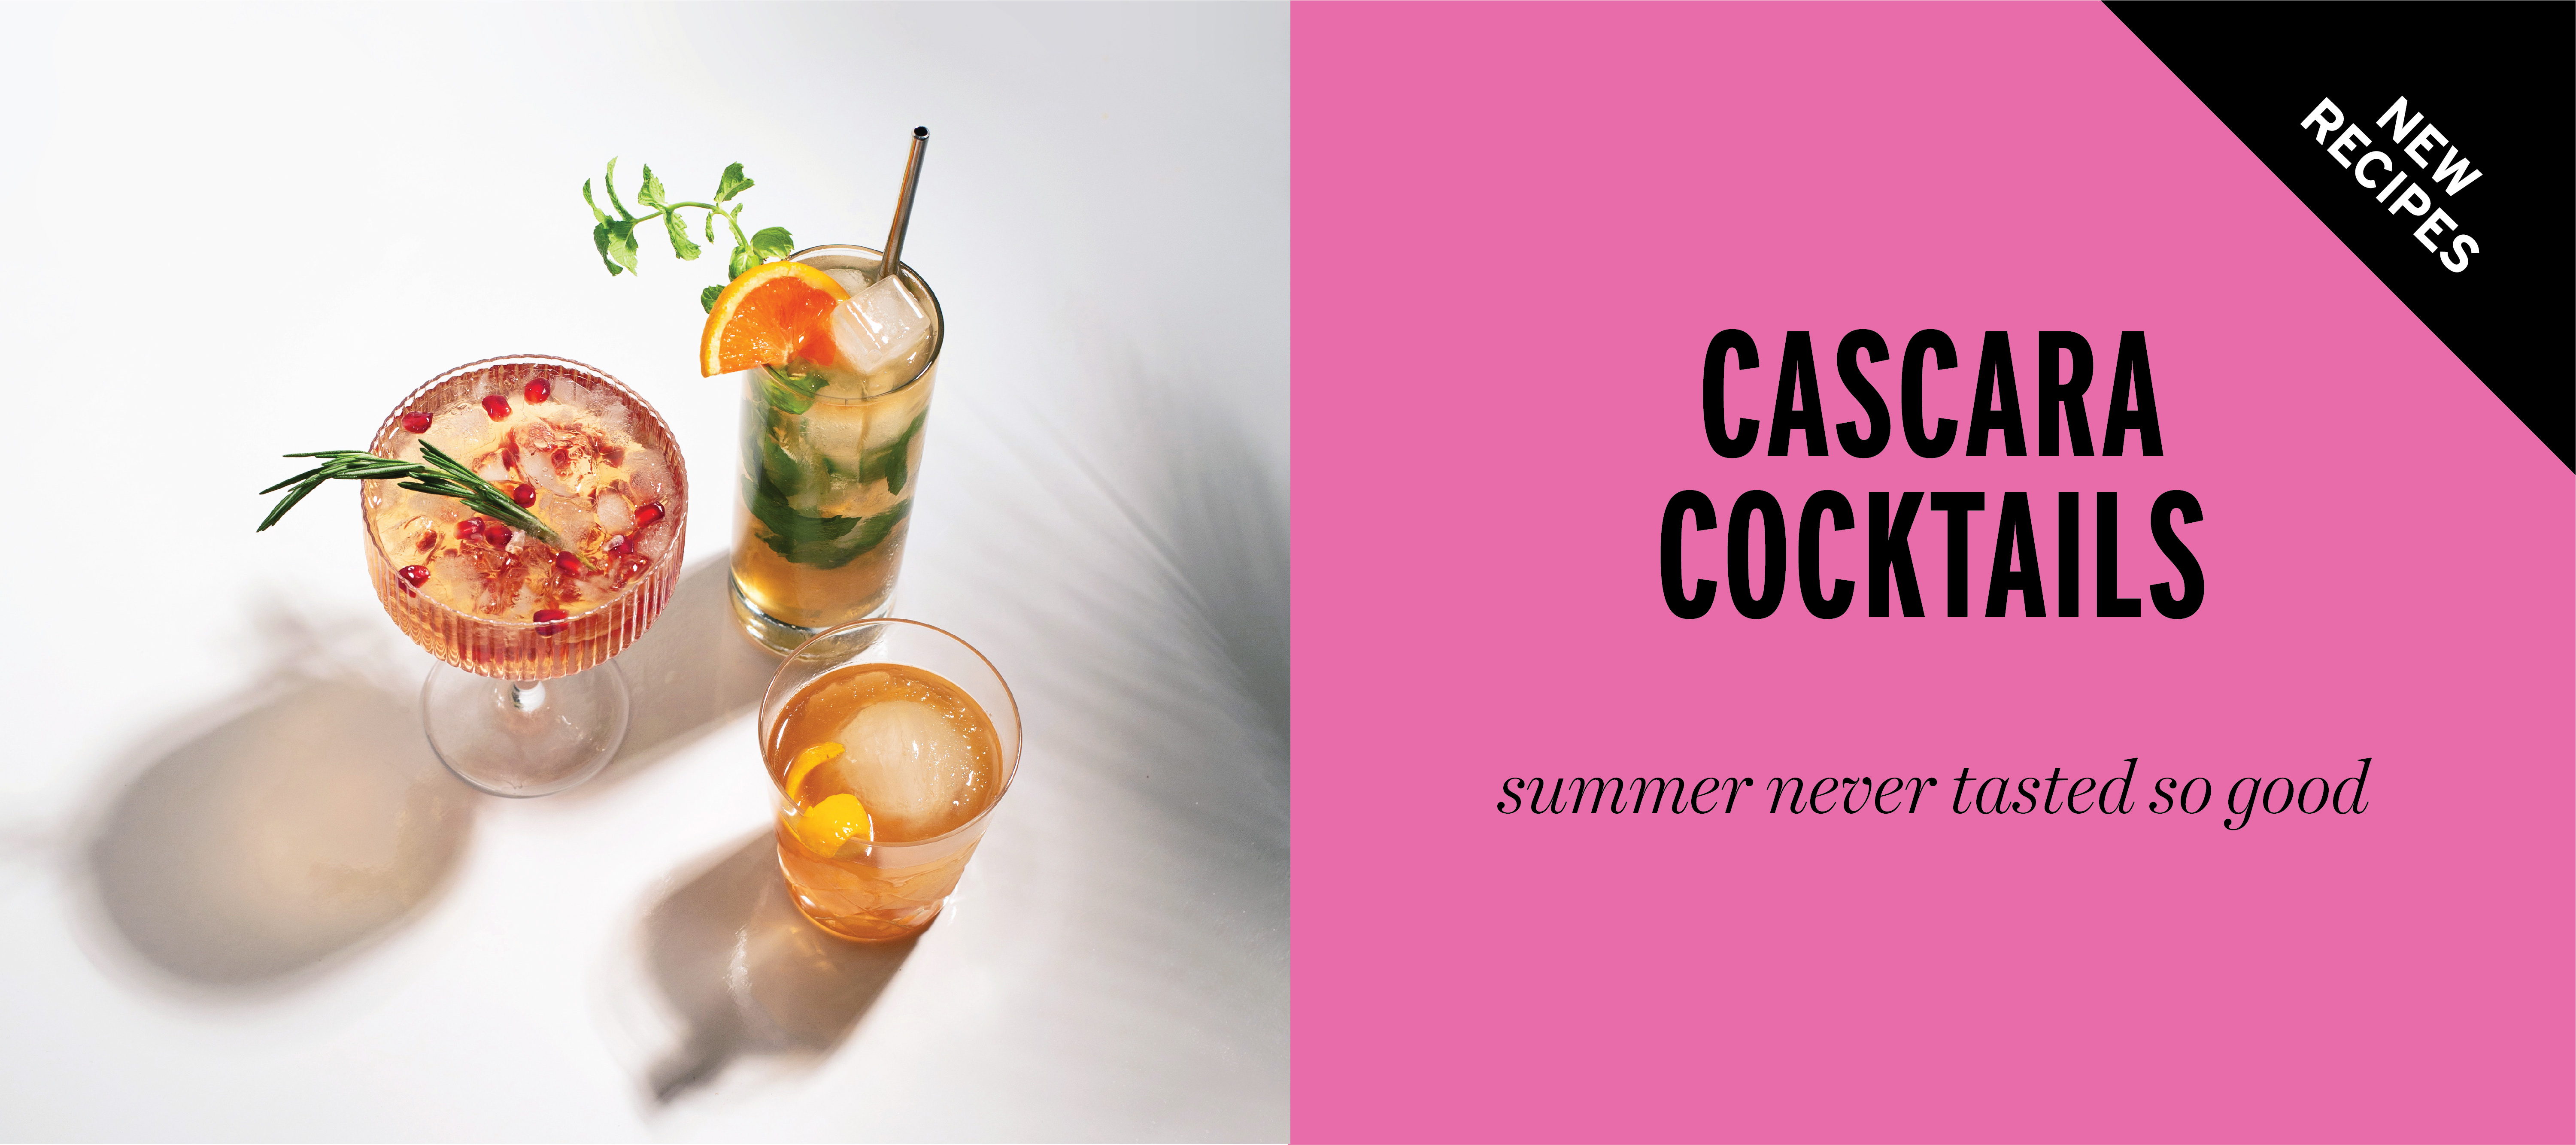 Cascara sparkling iced tea is a nutrient-rich super fruit, THE drink o the summer